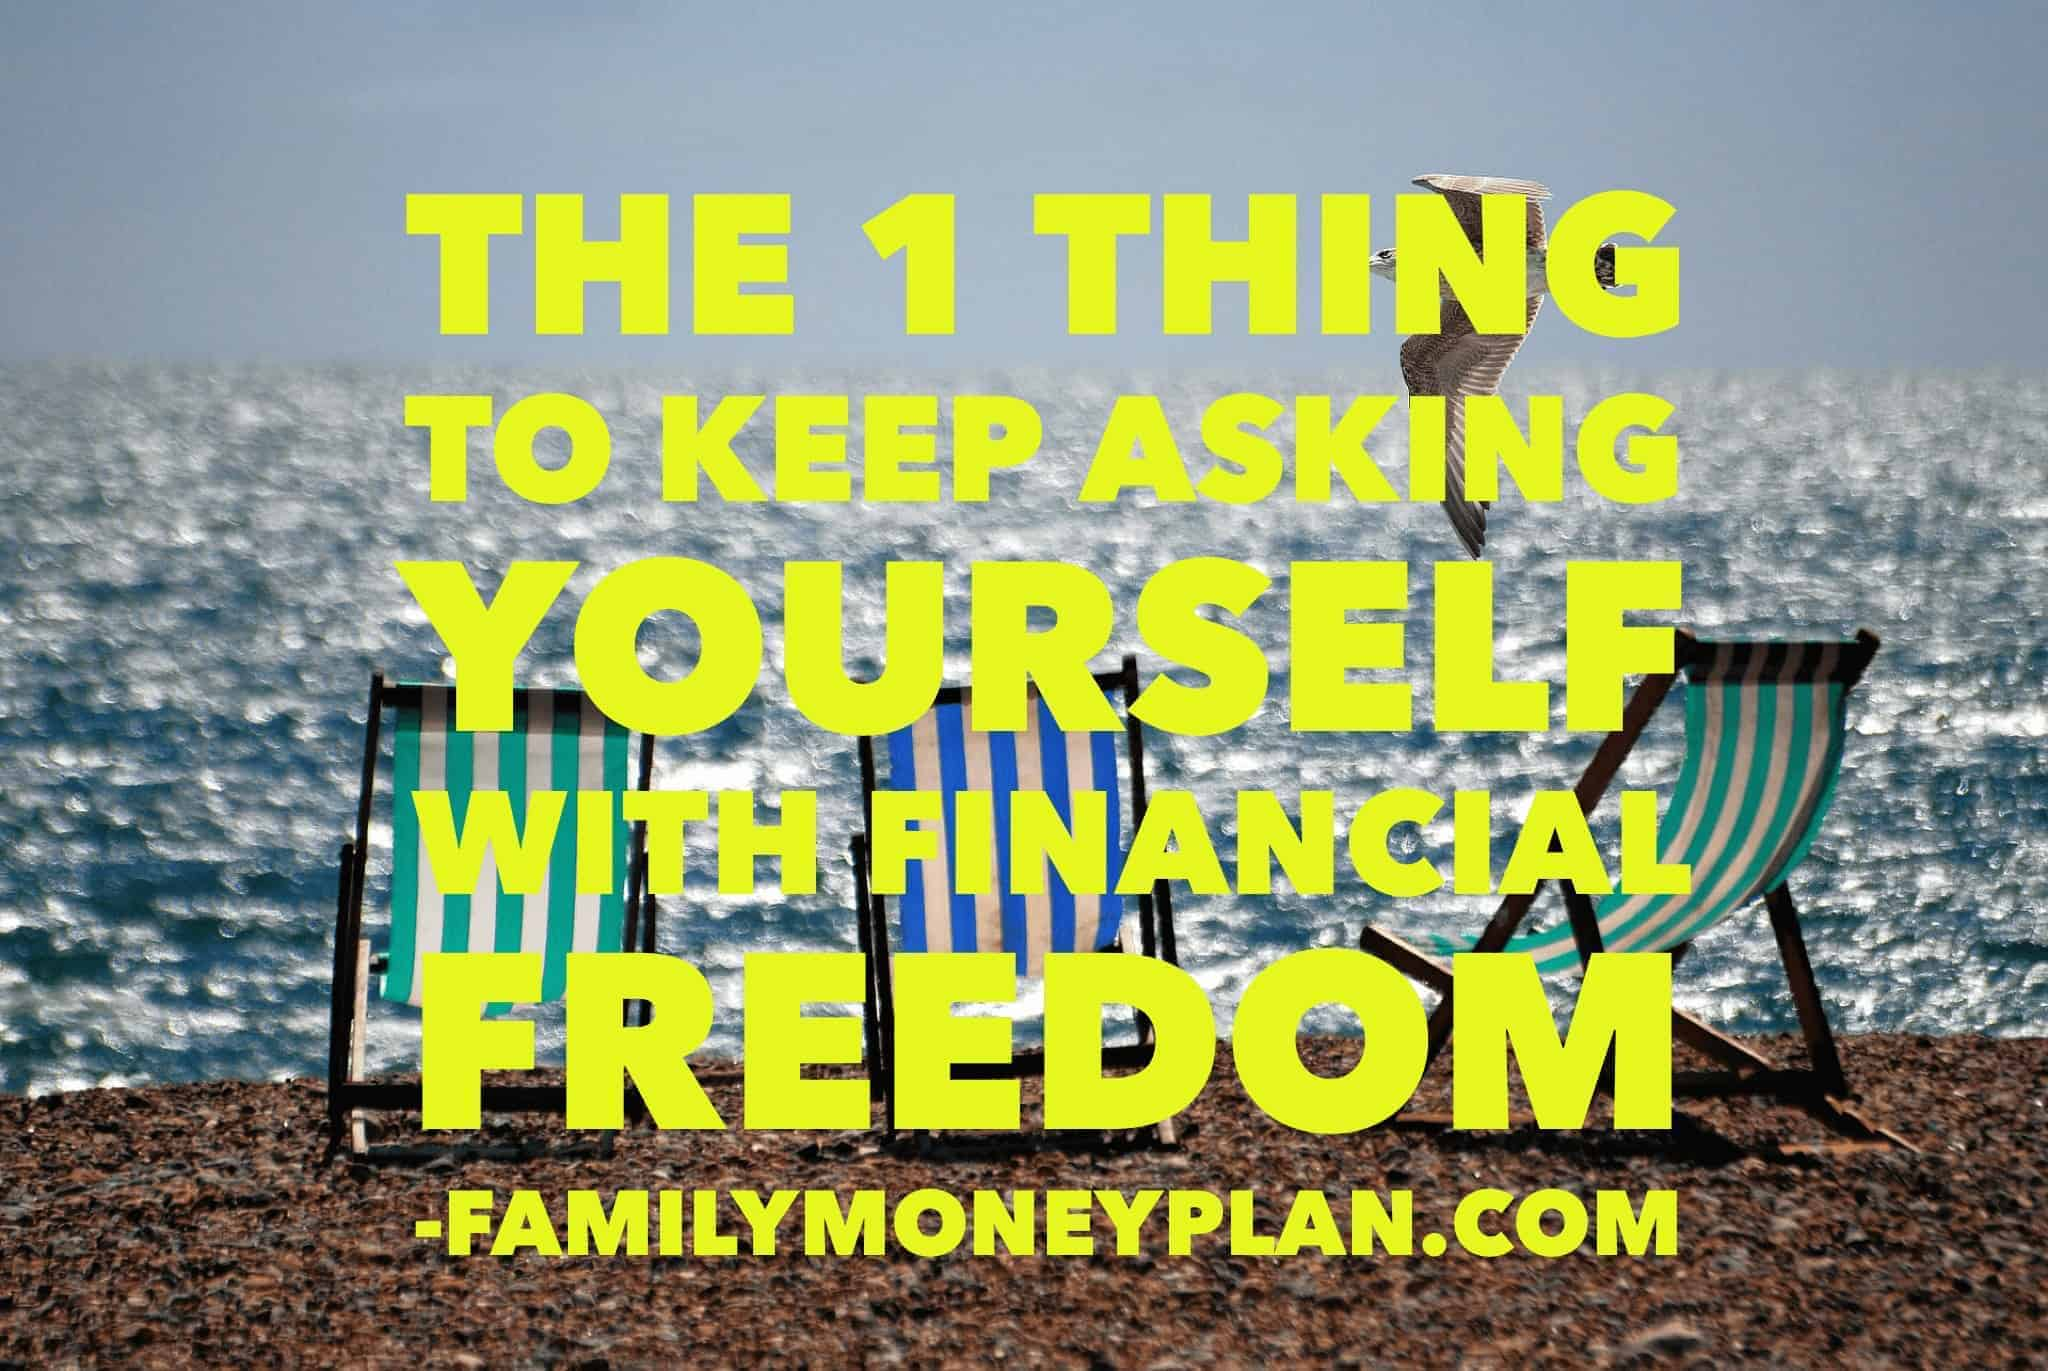 The 1 Question to Keep Asking Yourself With Financial Freedom